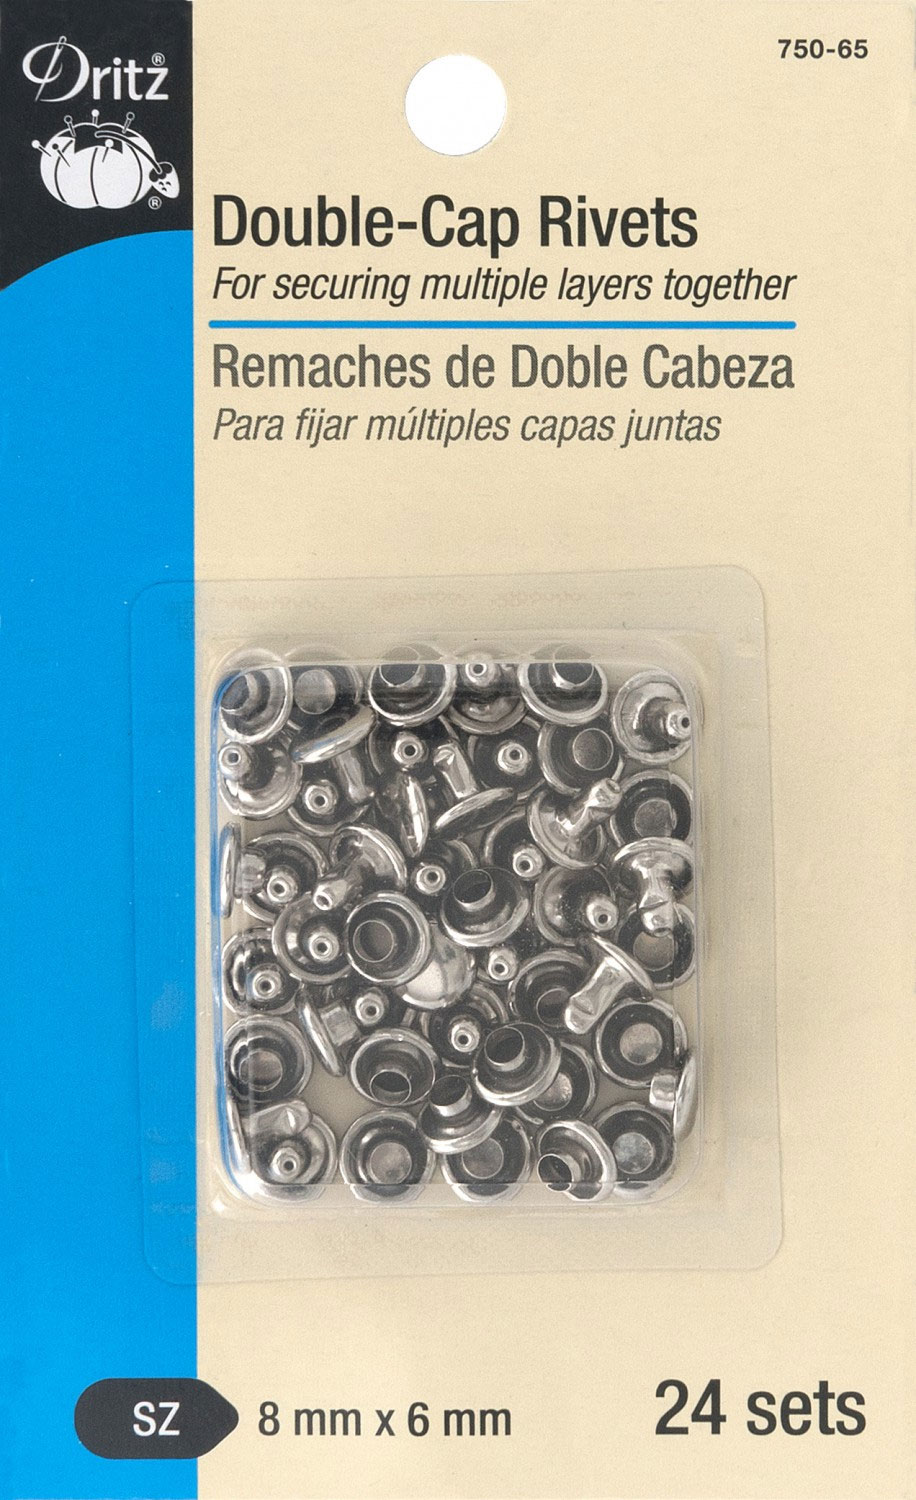 Double-Cap-Rivets-8mm-x-6mm-from-dritz-front